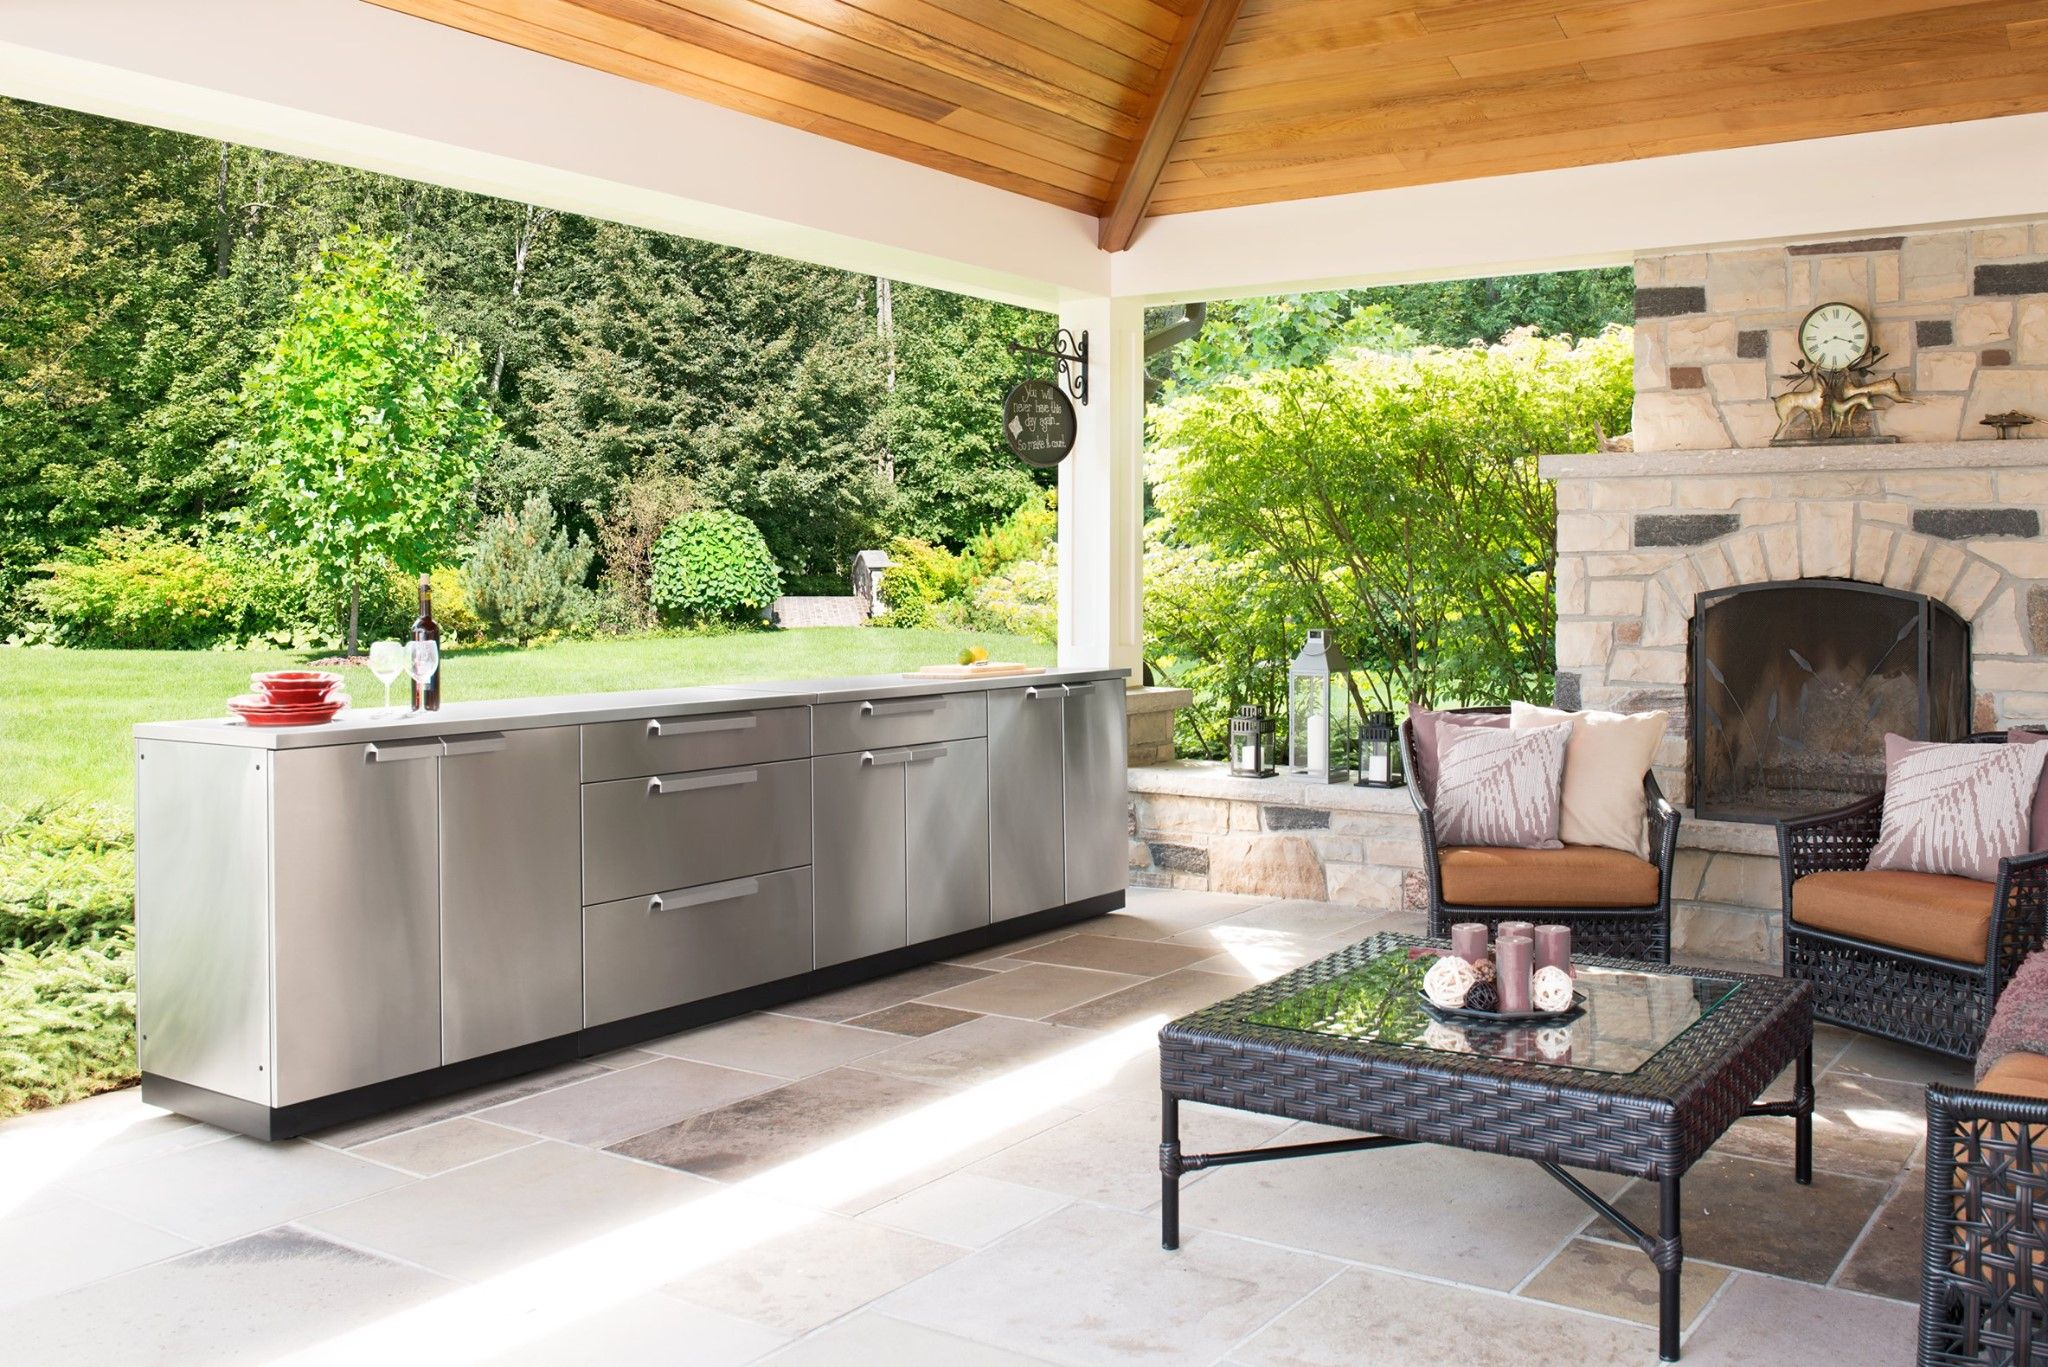 The Allure Of The Perfect Backyard Outdoor Cabinets Offer More Than Just Storage And Organization For Yo In 2020 Kitchen Sale Outdoor Kitchen Cabinets Outdoor Kitchen